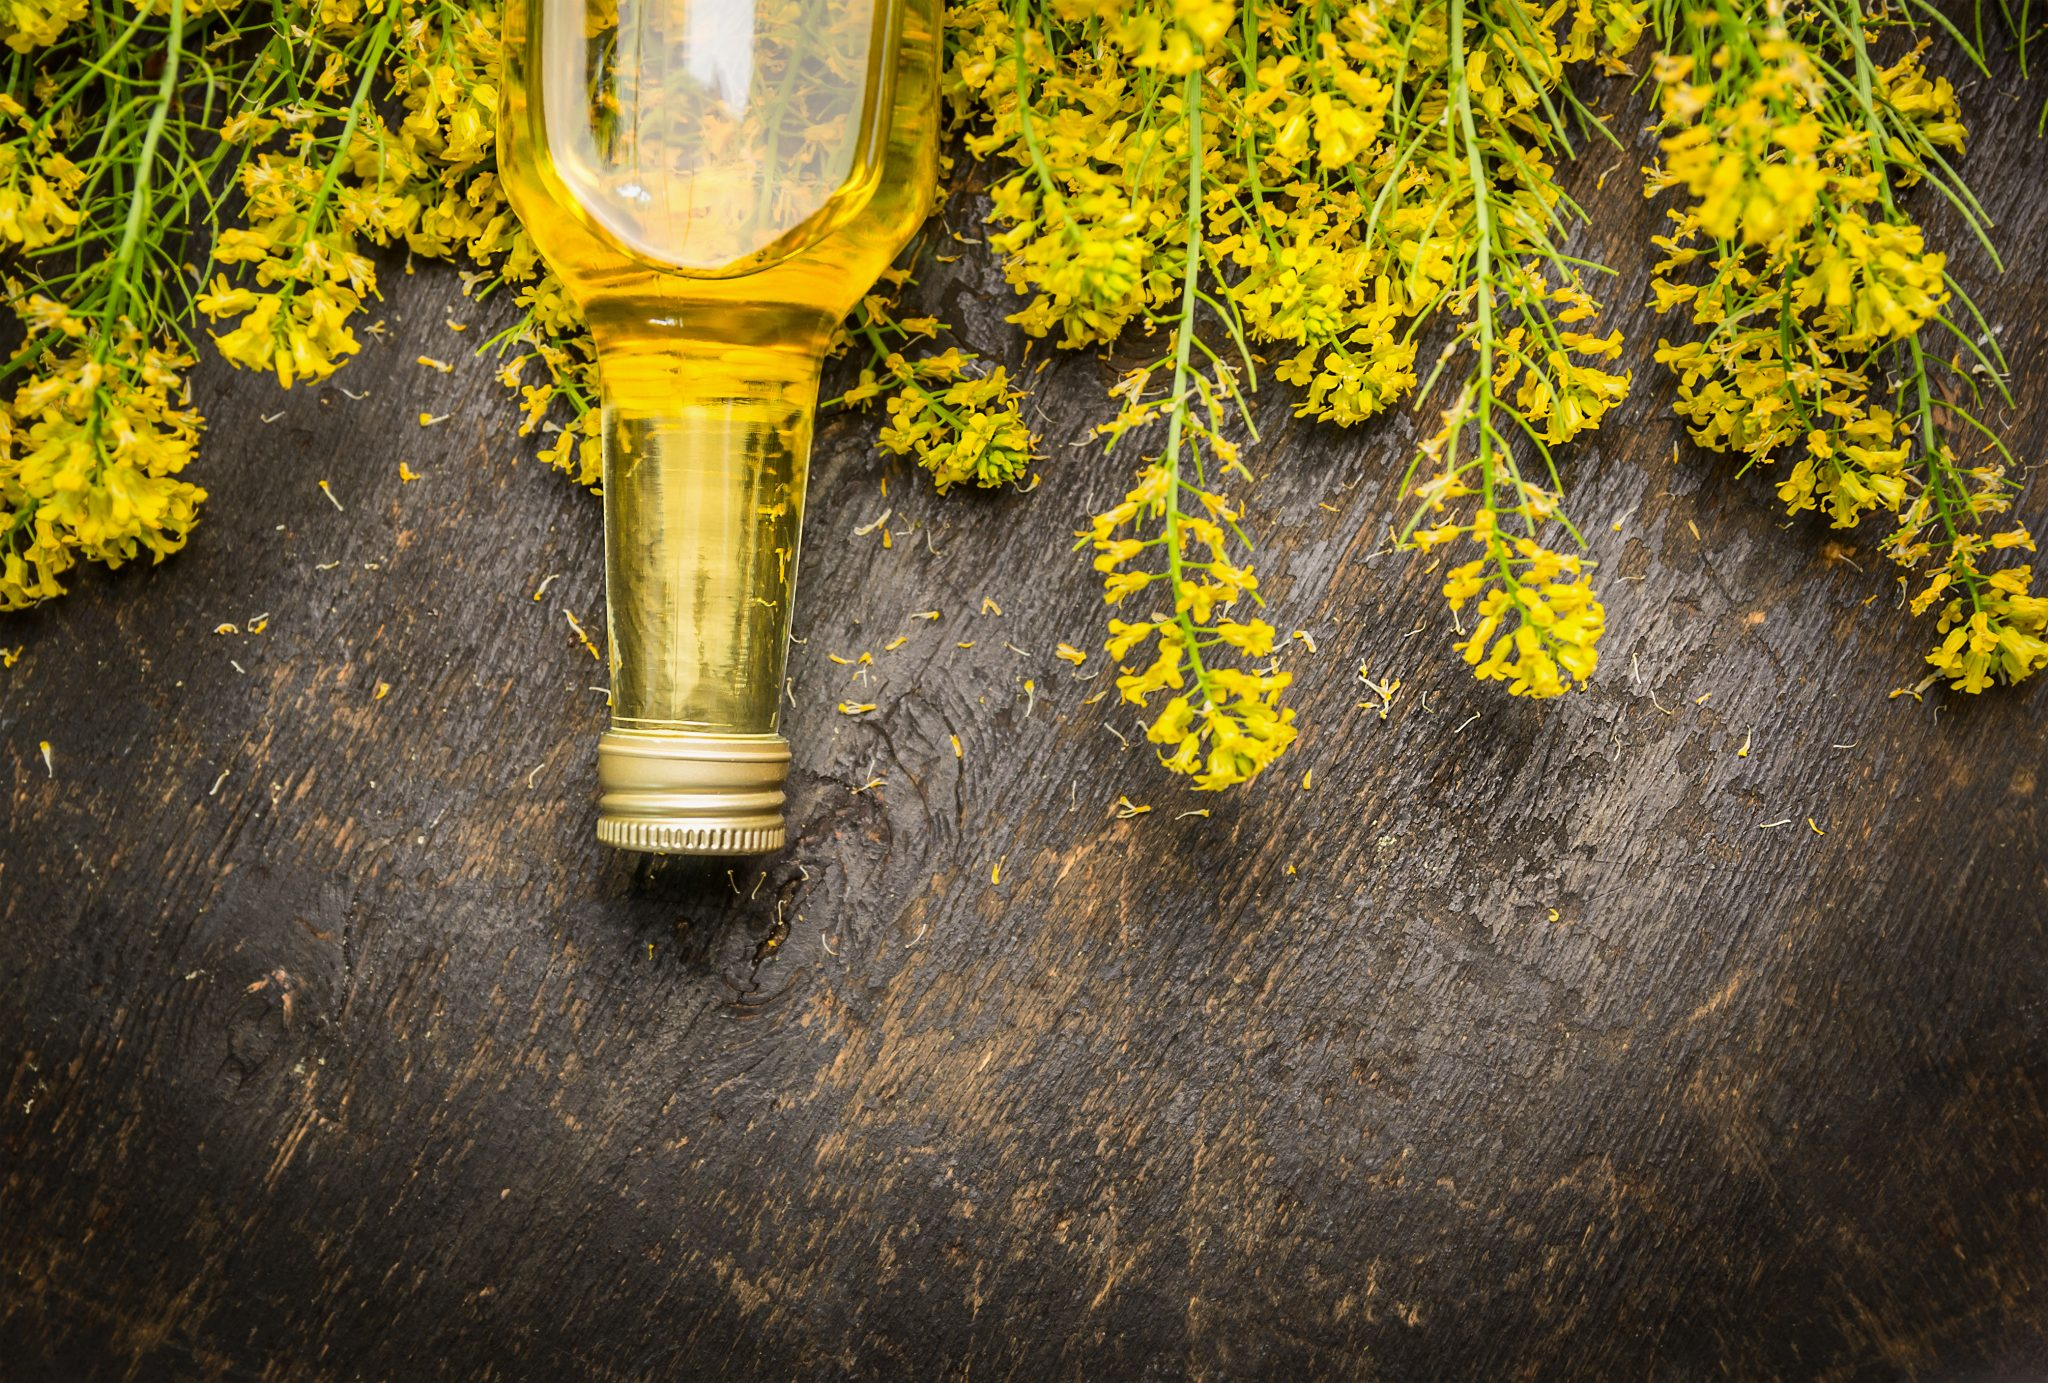 How Long Does Canola Oil Last? Can It Go Bad?